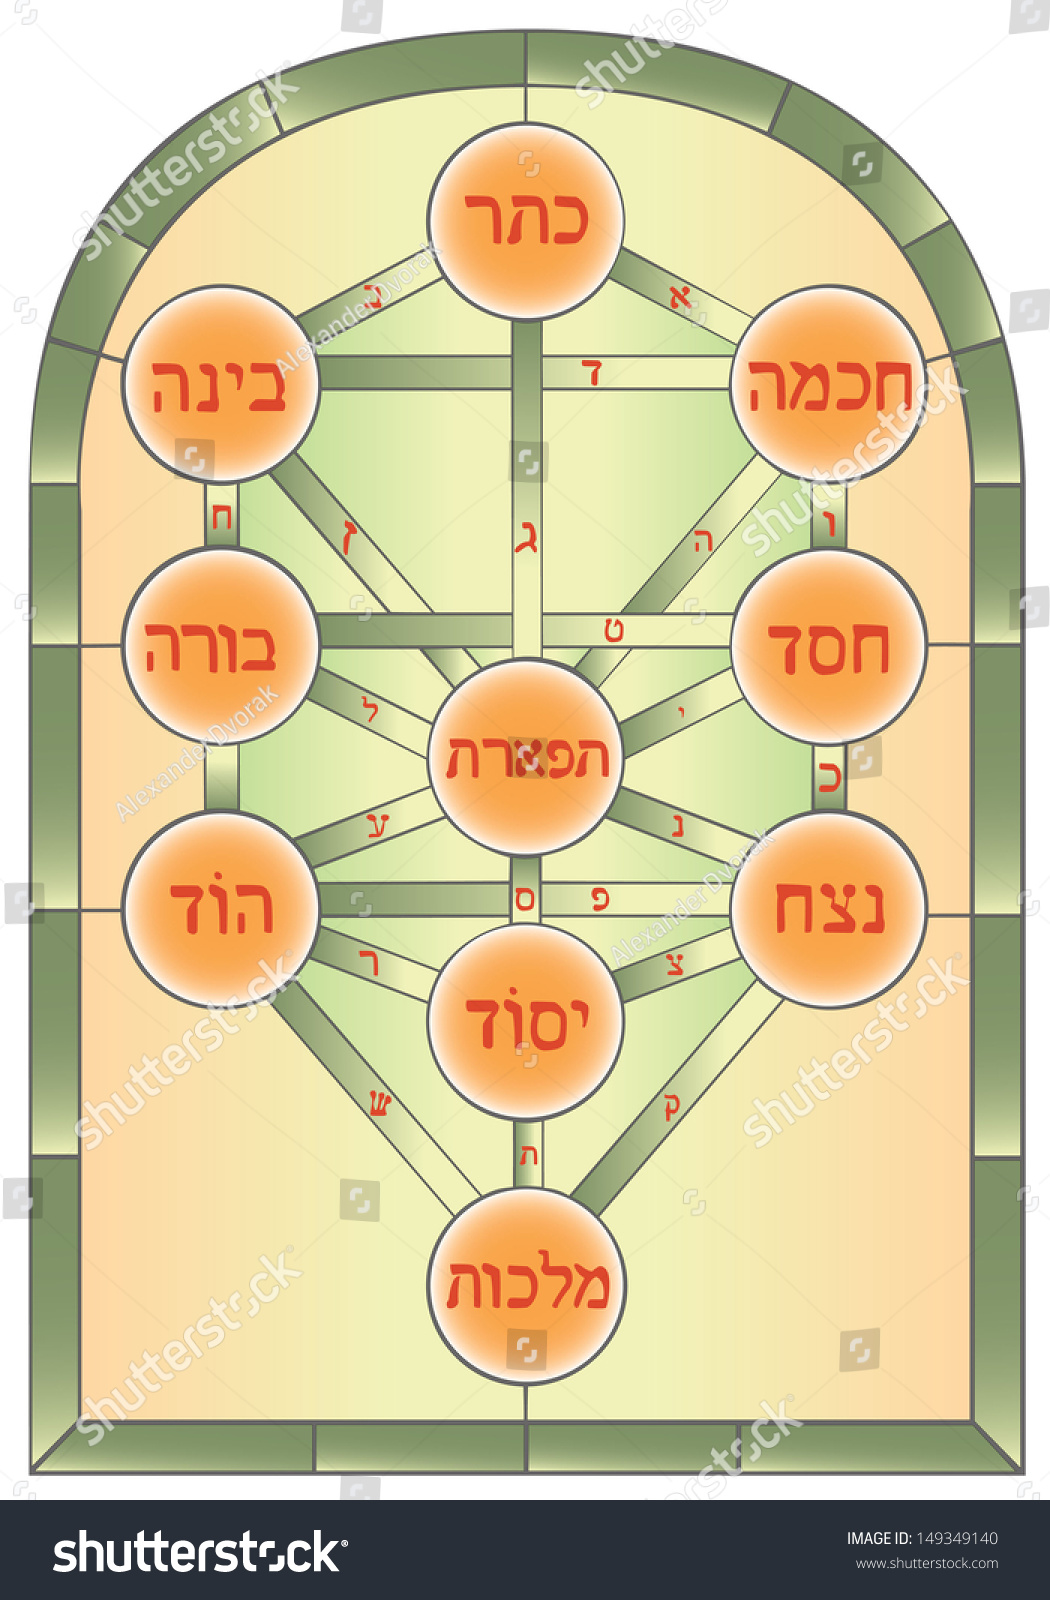 hight resolution of the tree of life mystical symbol used in the kabbalah of esoteric judaism